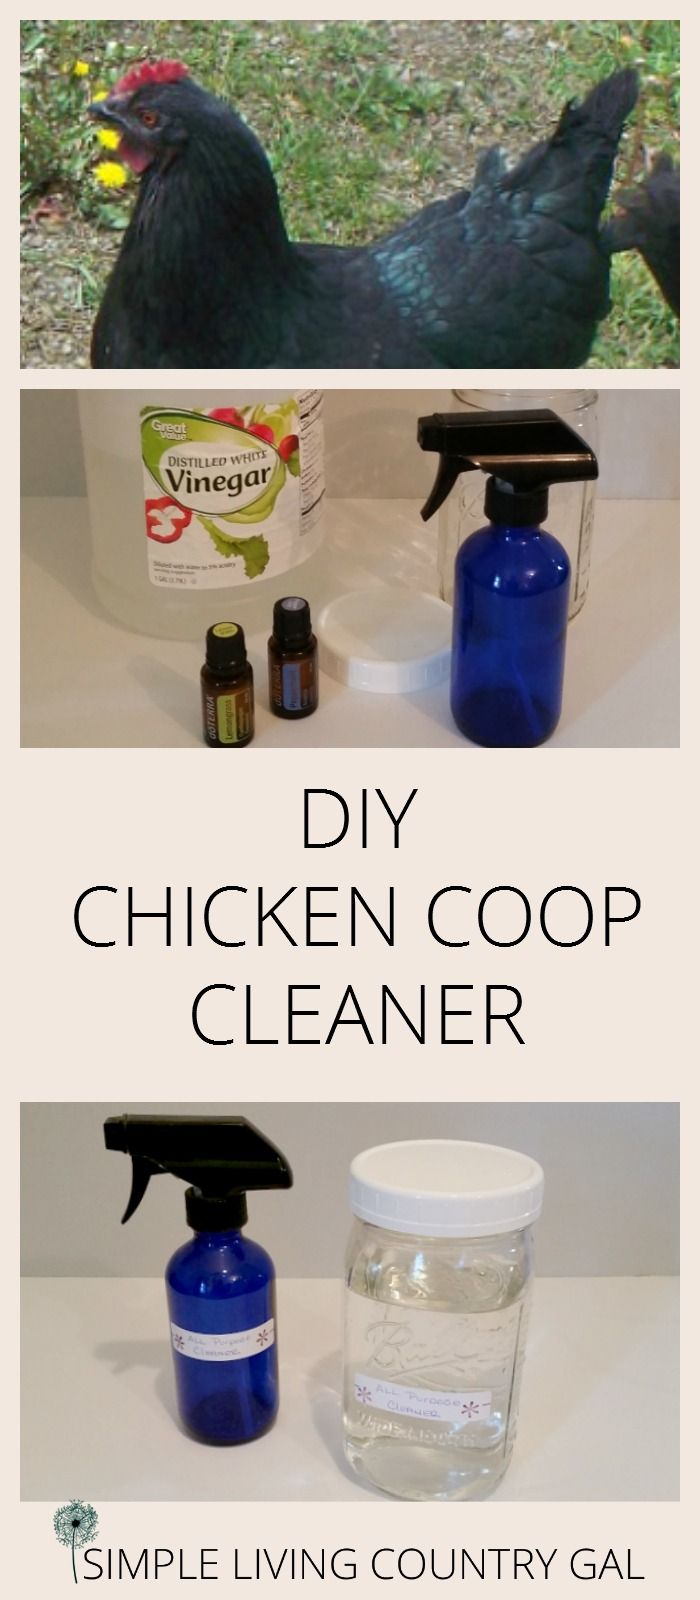 Use this simple natural and effective cleaner for your chicken coop. Spray on all surfaces to disinfect and deter pests. via @SLcountrygal